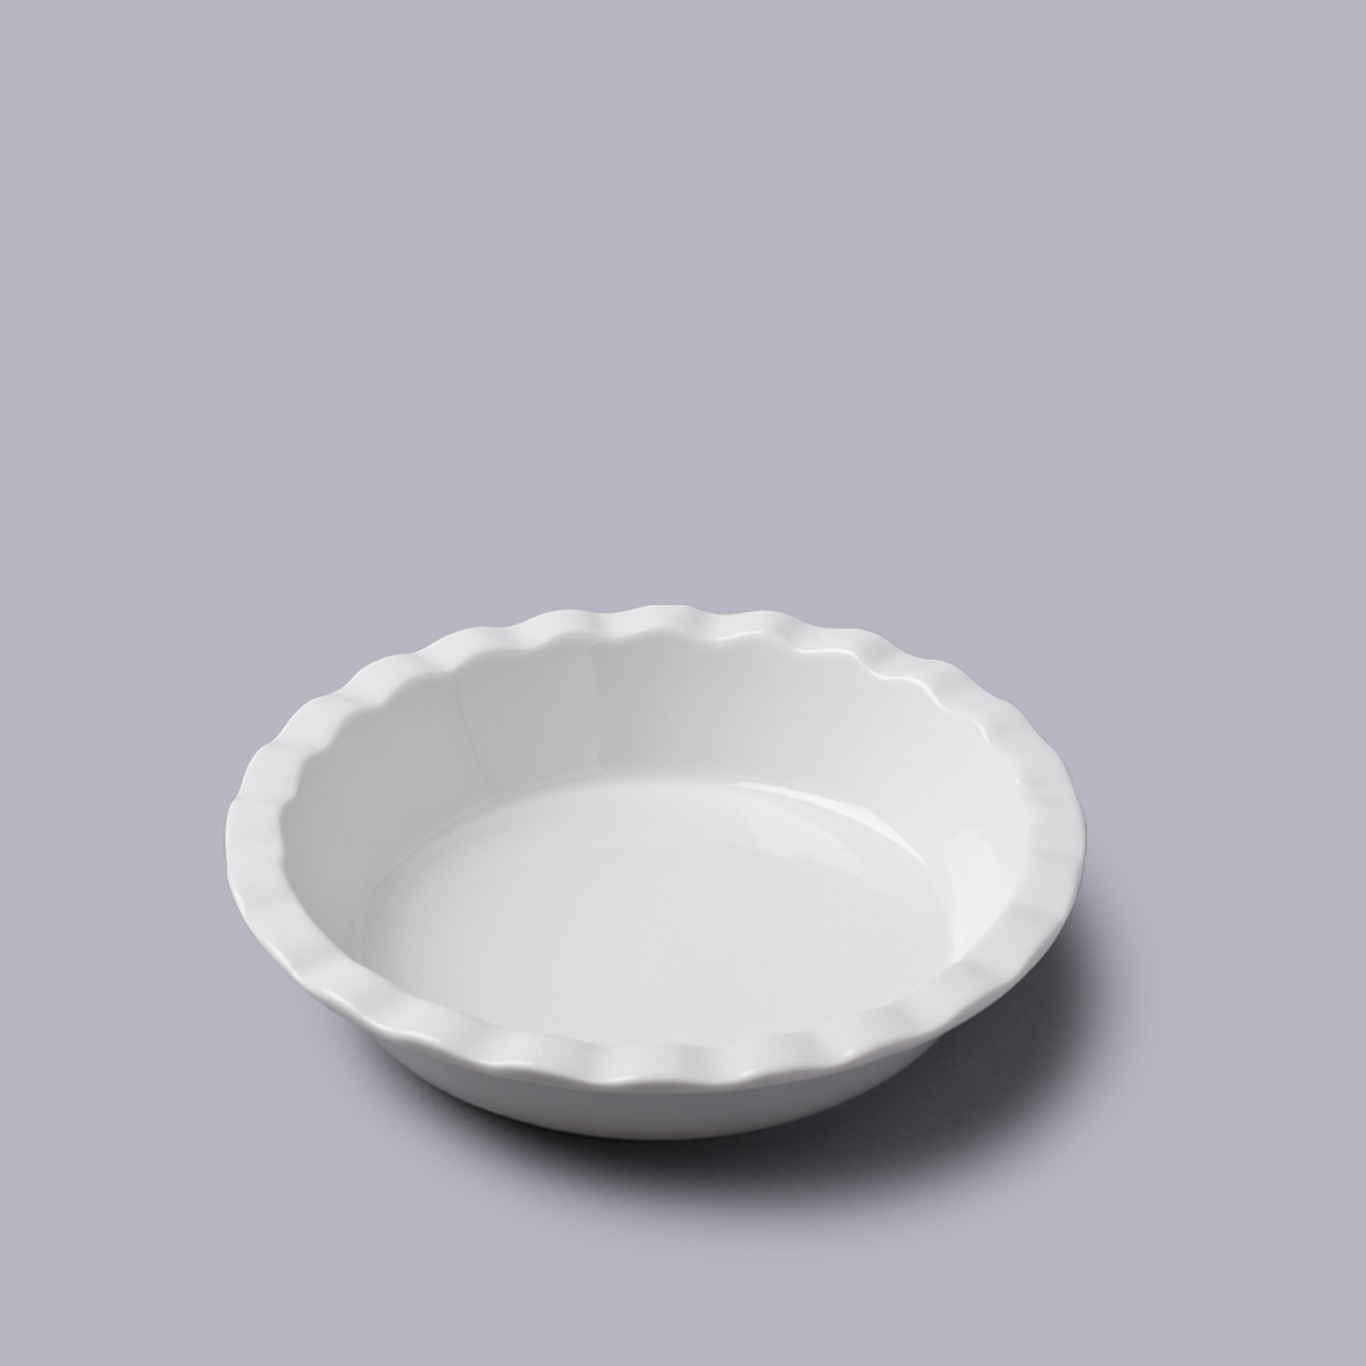 Image of Round Pie Dish with Crinkle Crust Rim 20cm